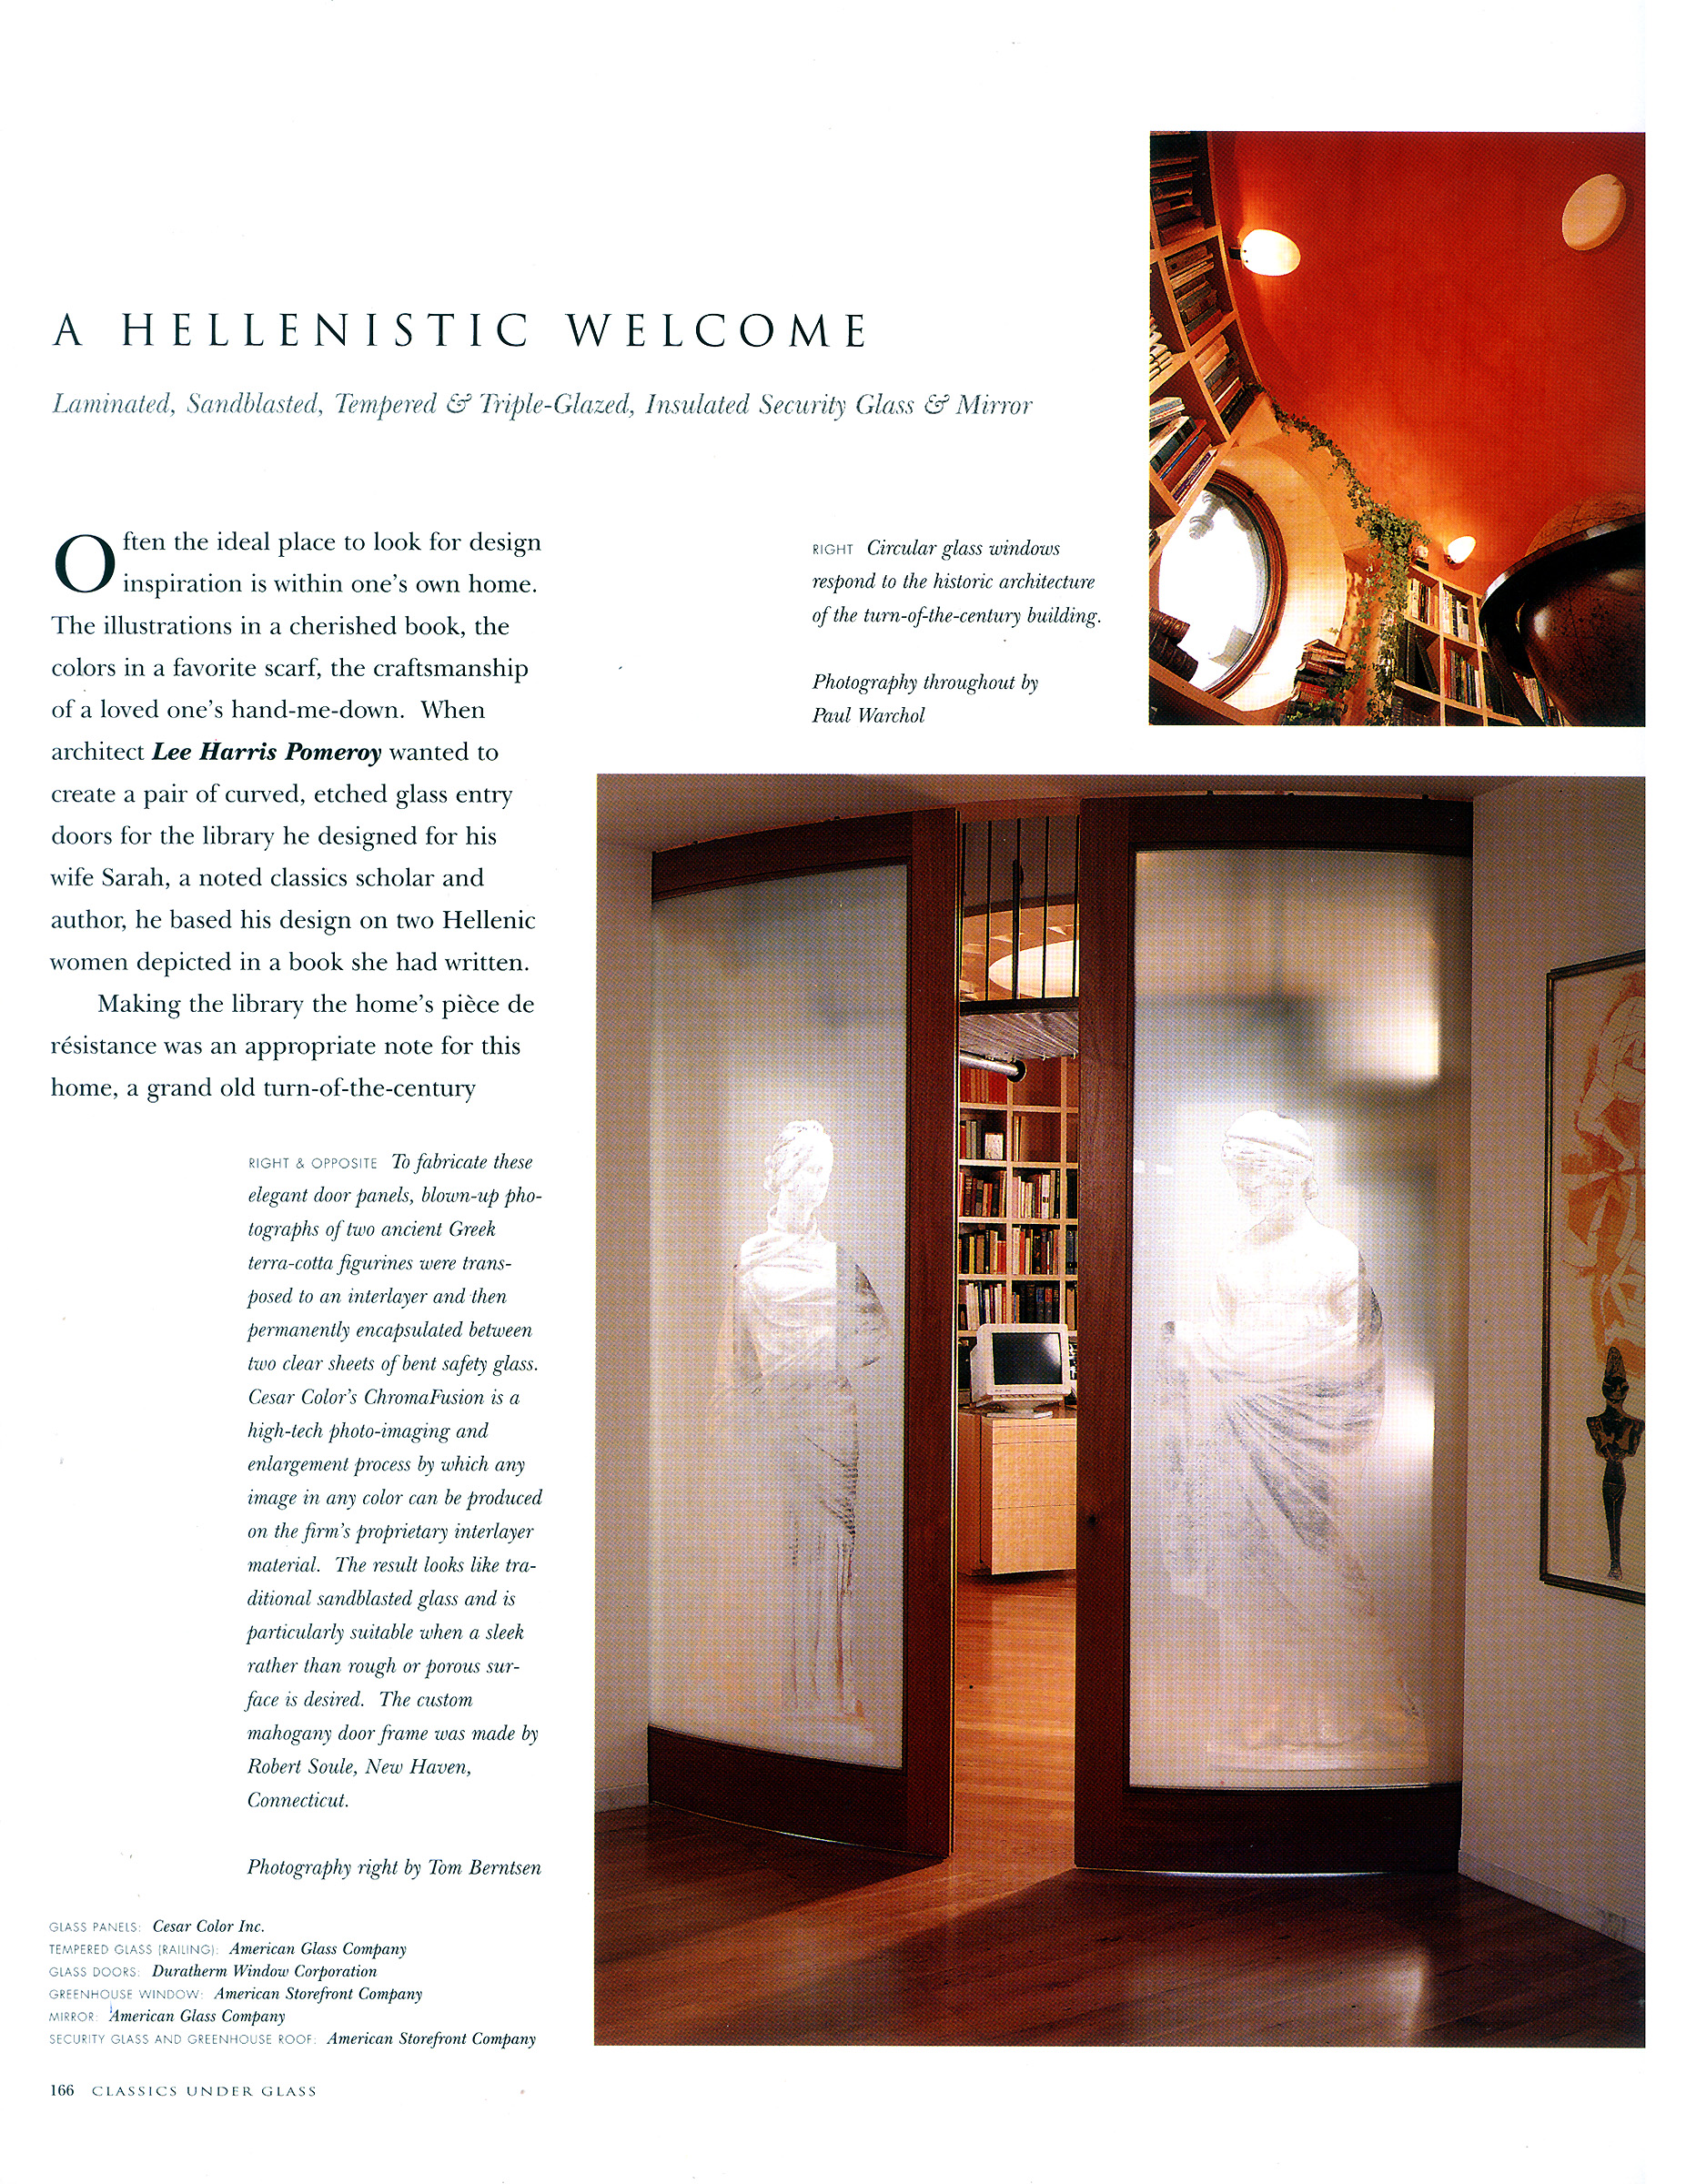 285 CPW Design with glass page 2.jpg